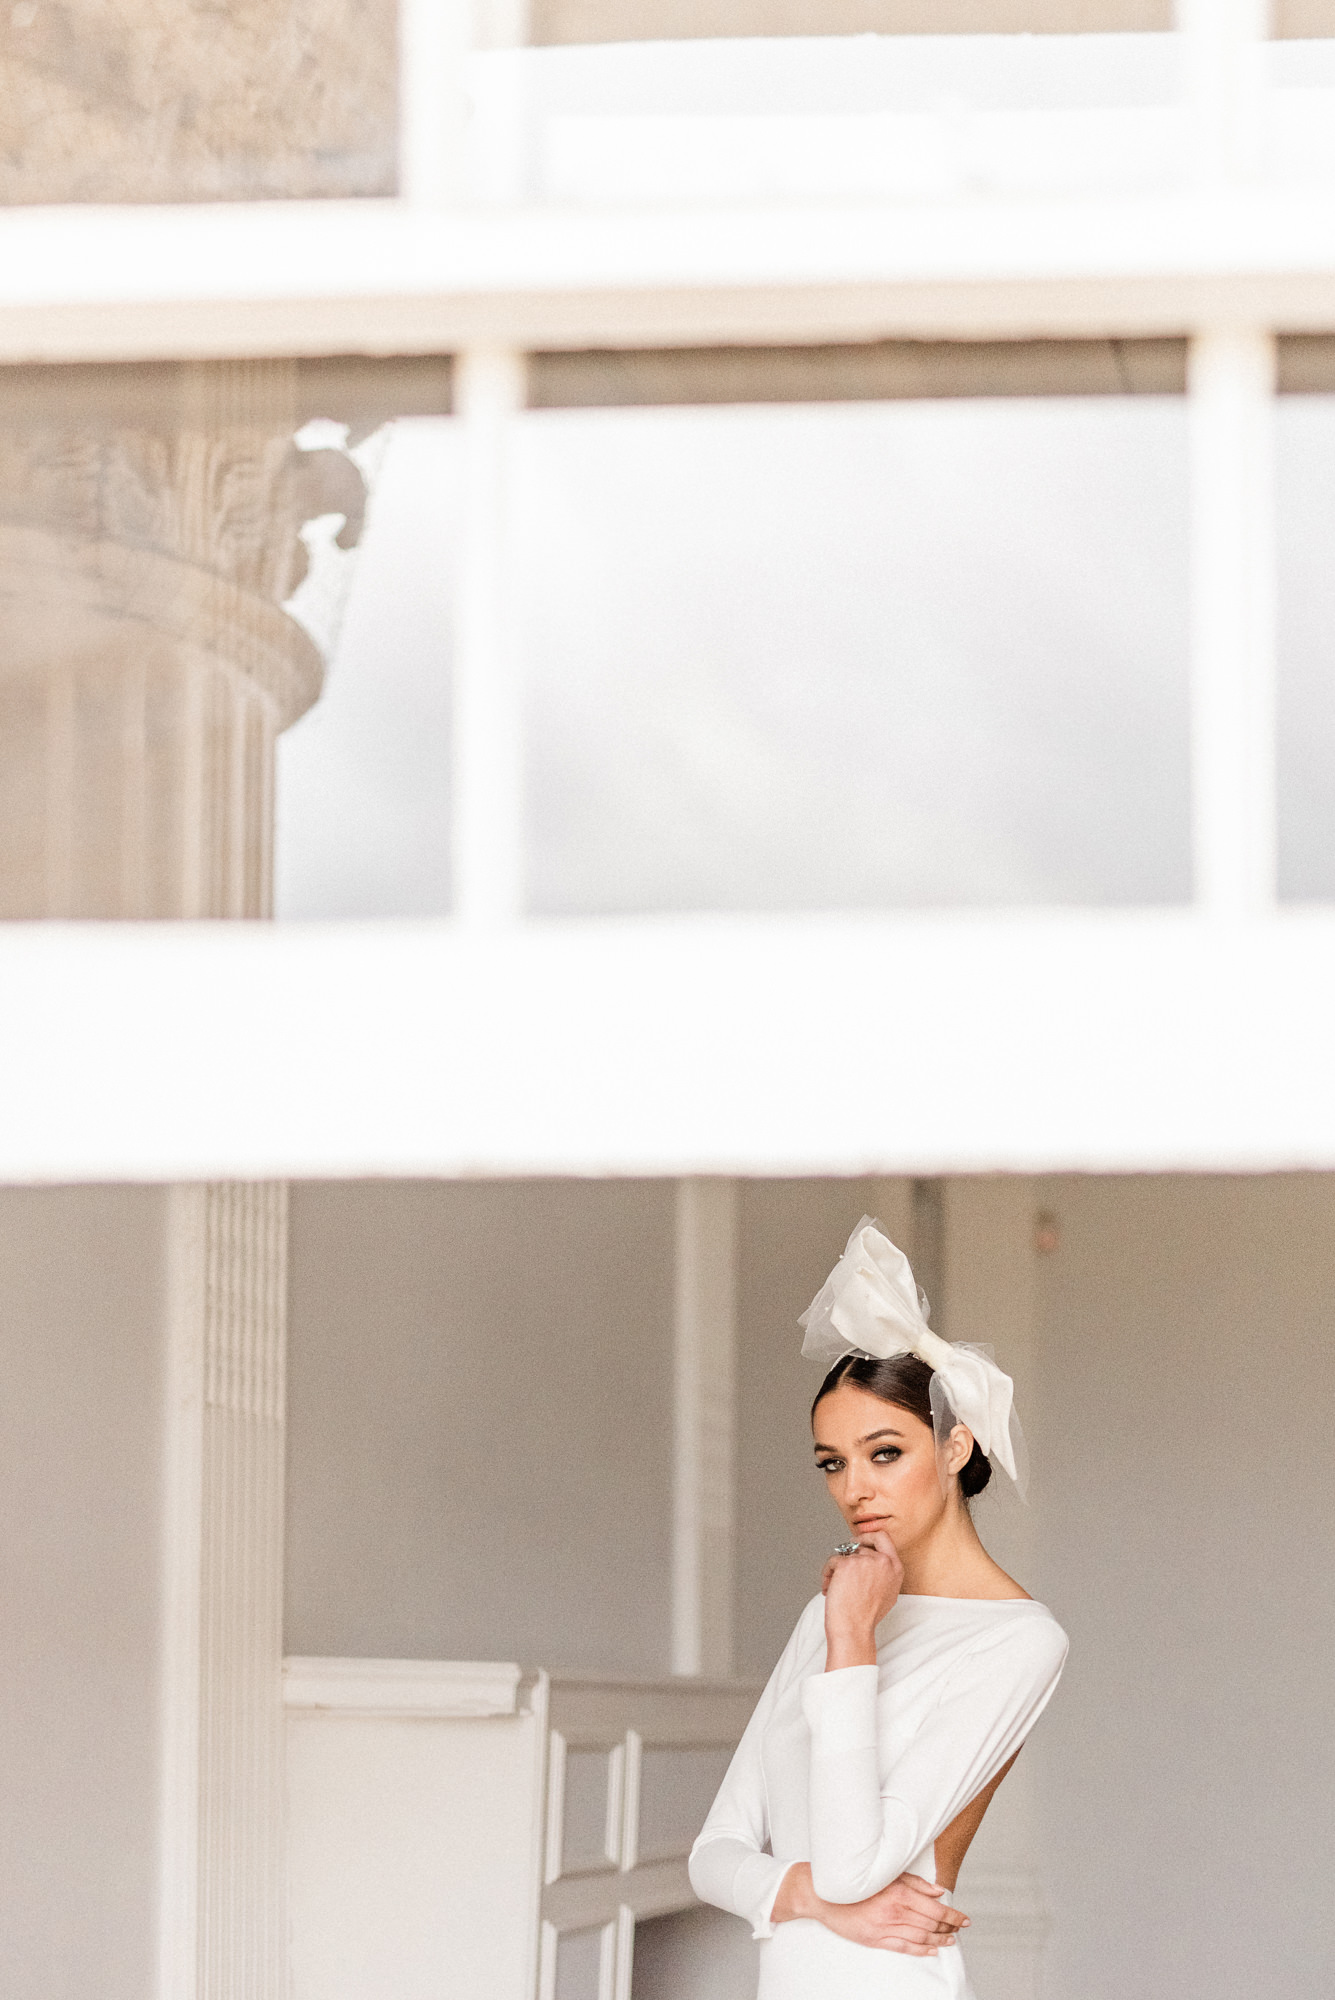 Fashionable bride with large white bow in hair - photo by Gianluca Adovasio Photography